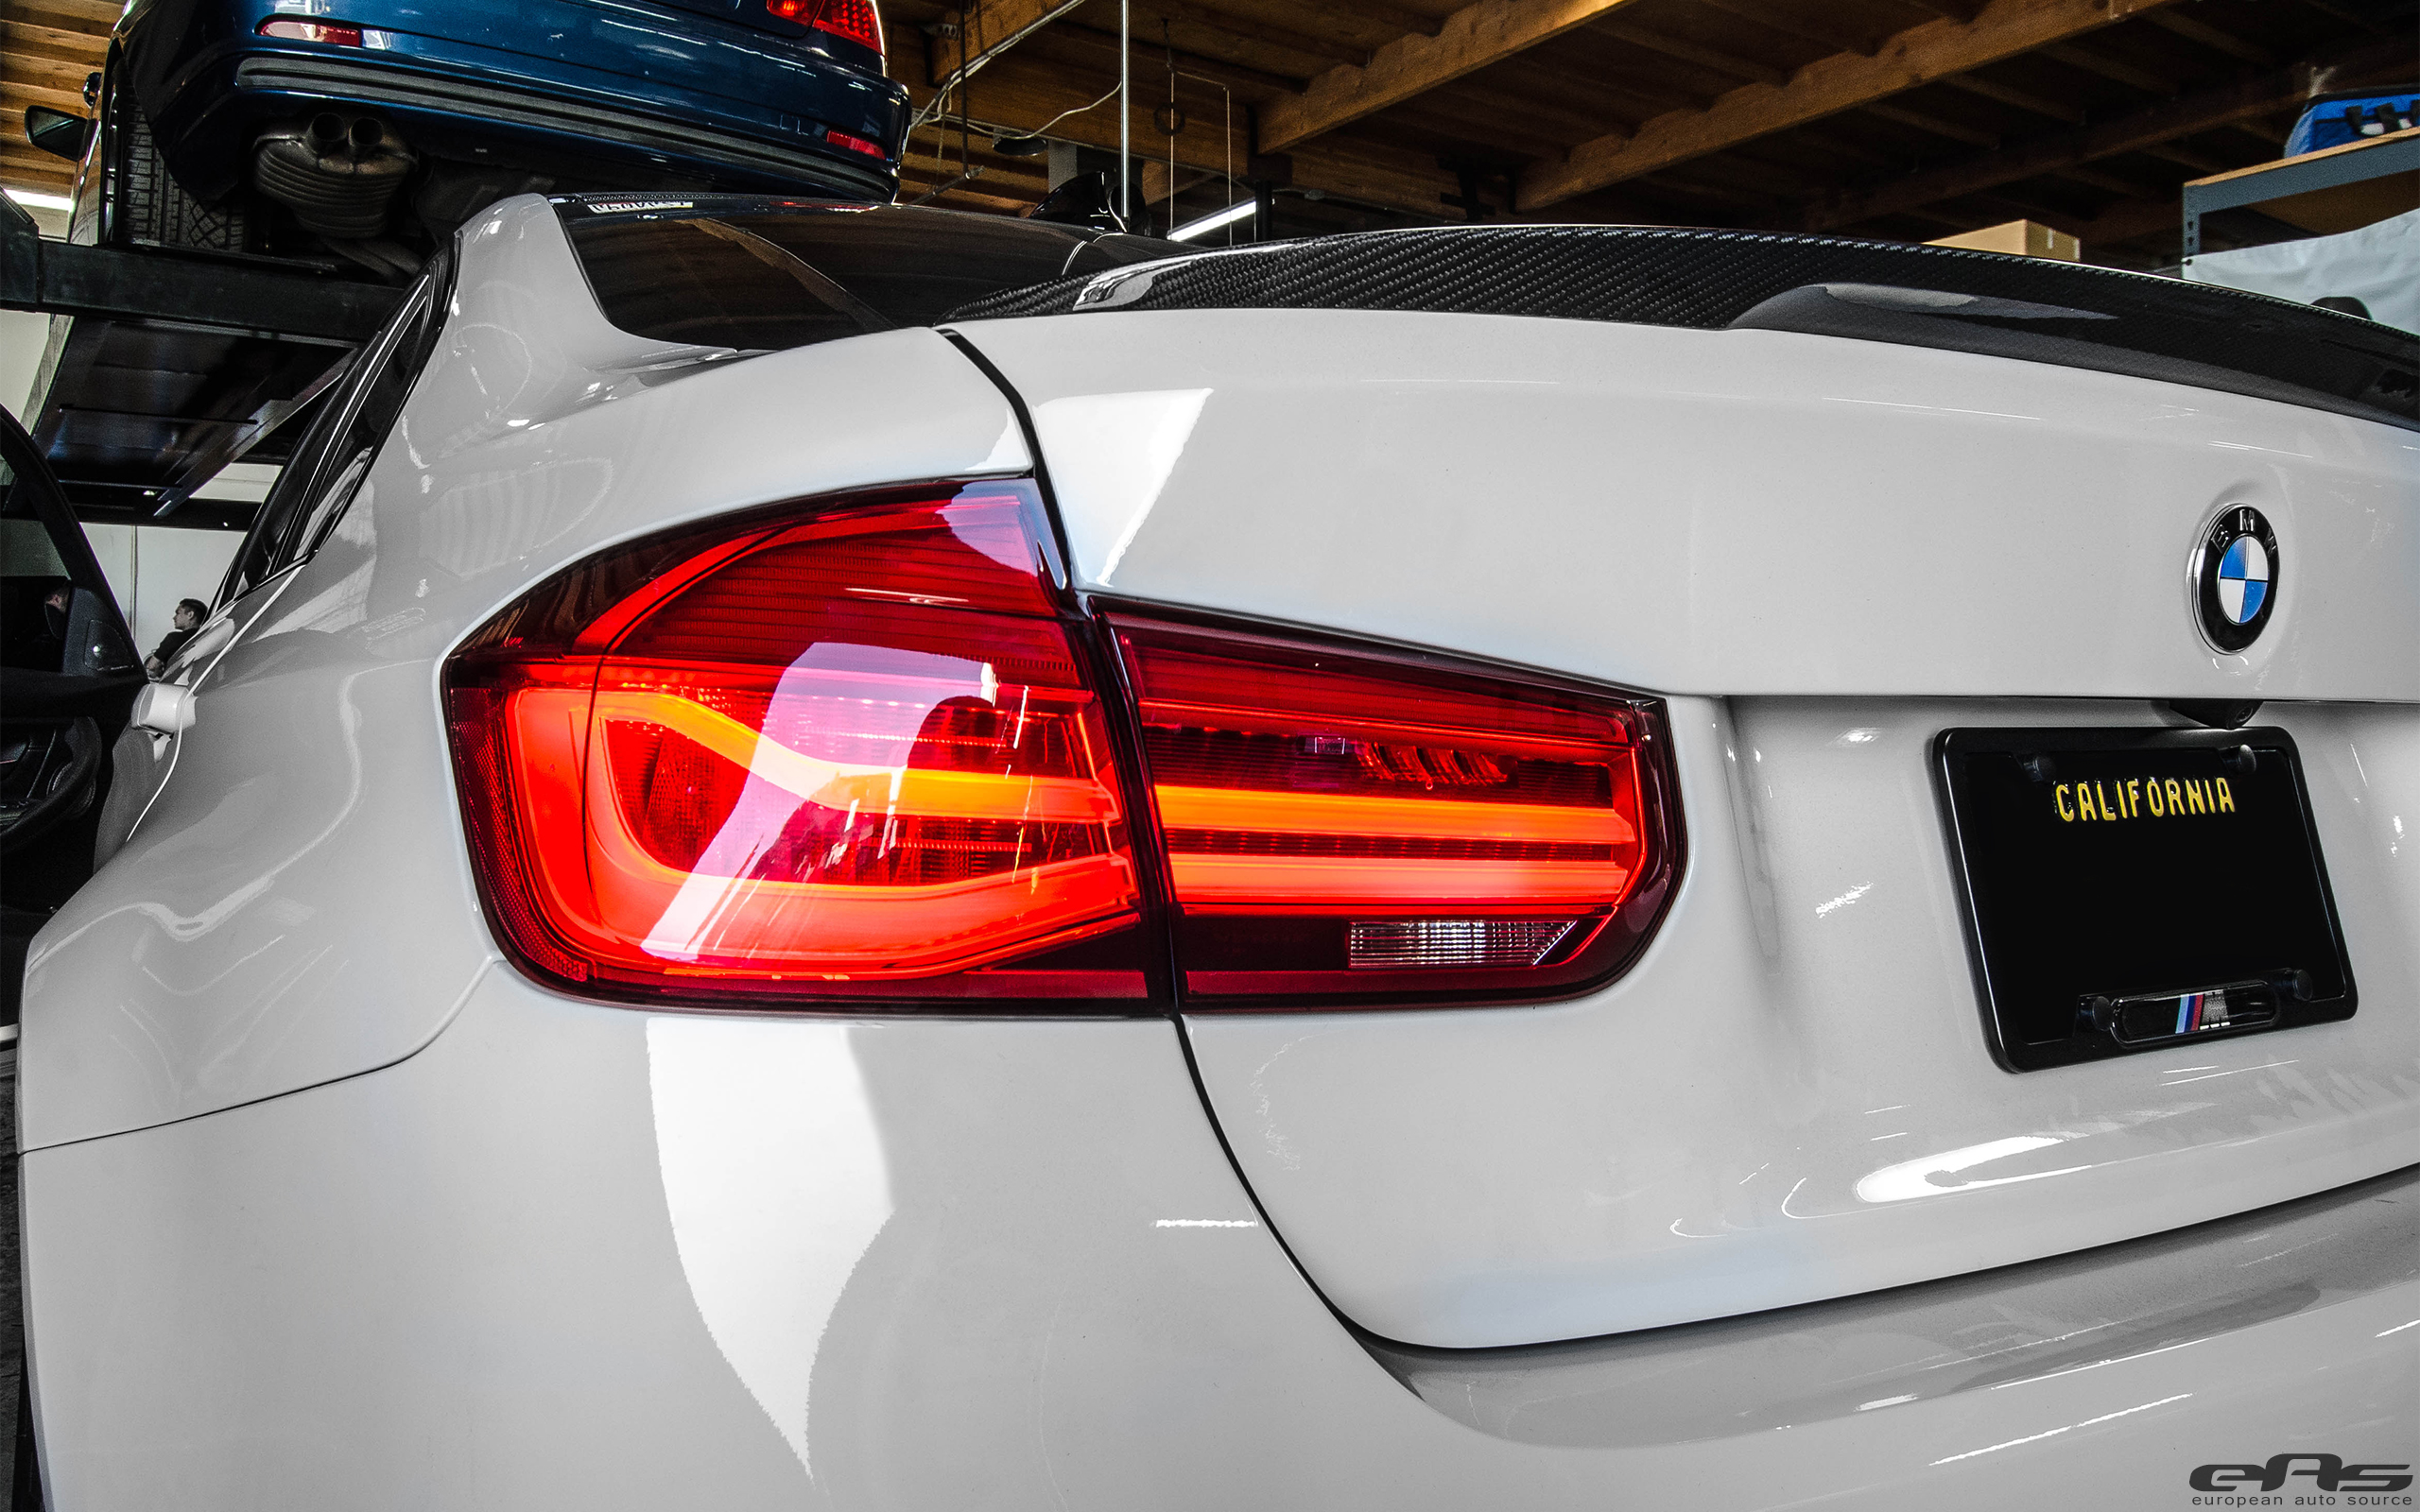 LCI LED Tail Lights - F80 M3 | BMW Performance Parts ...